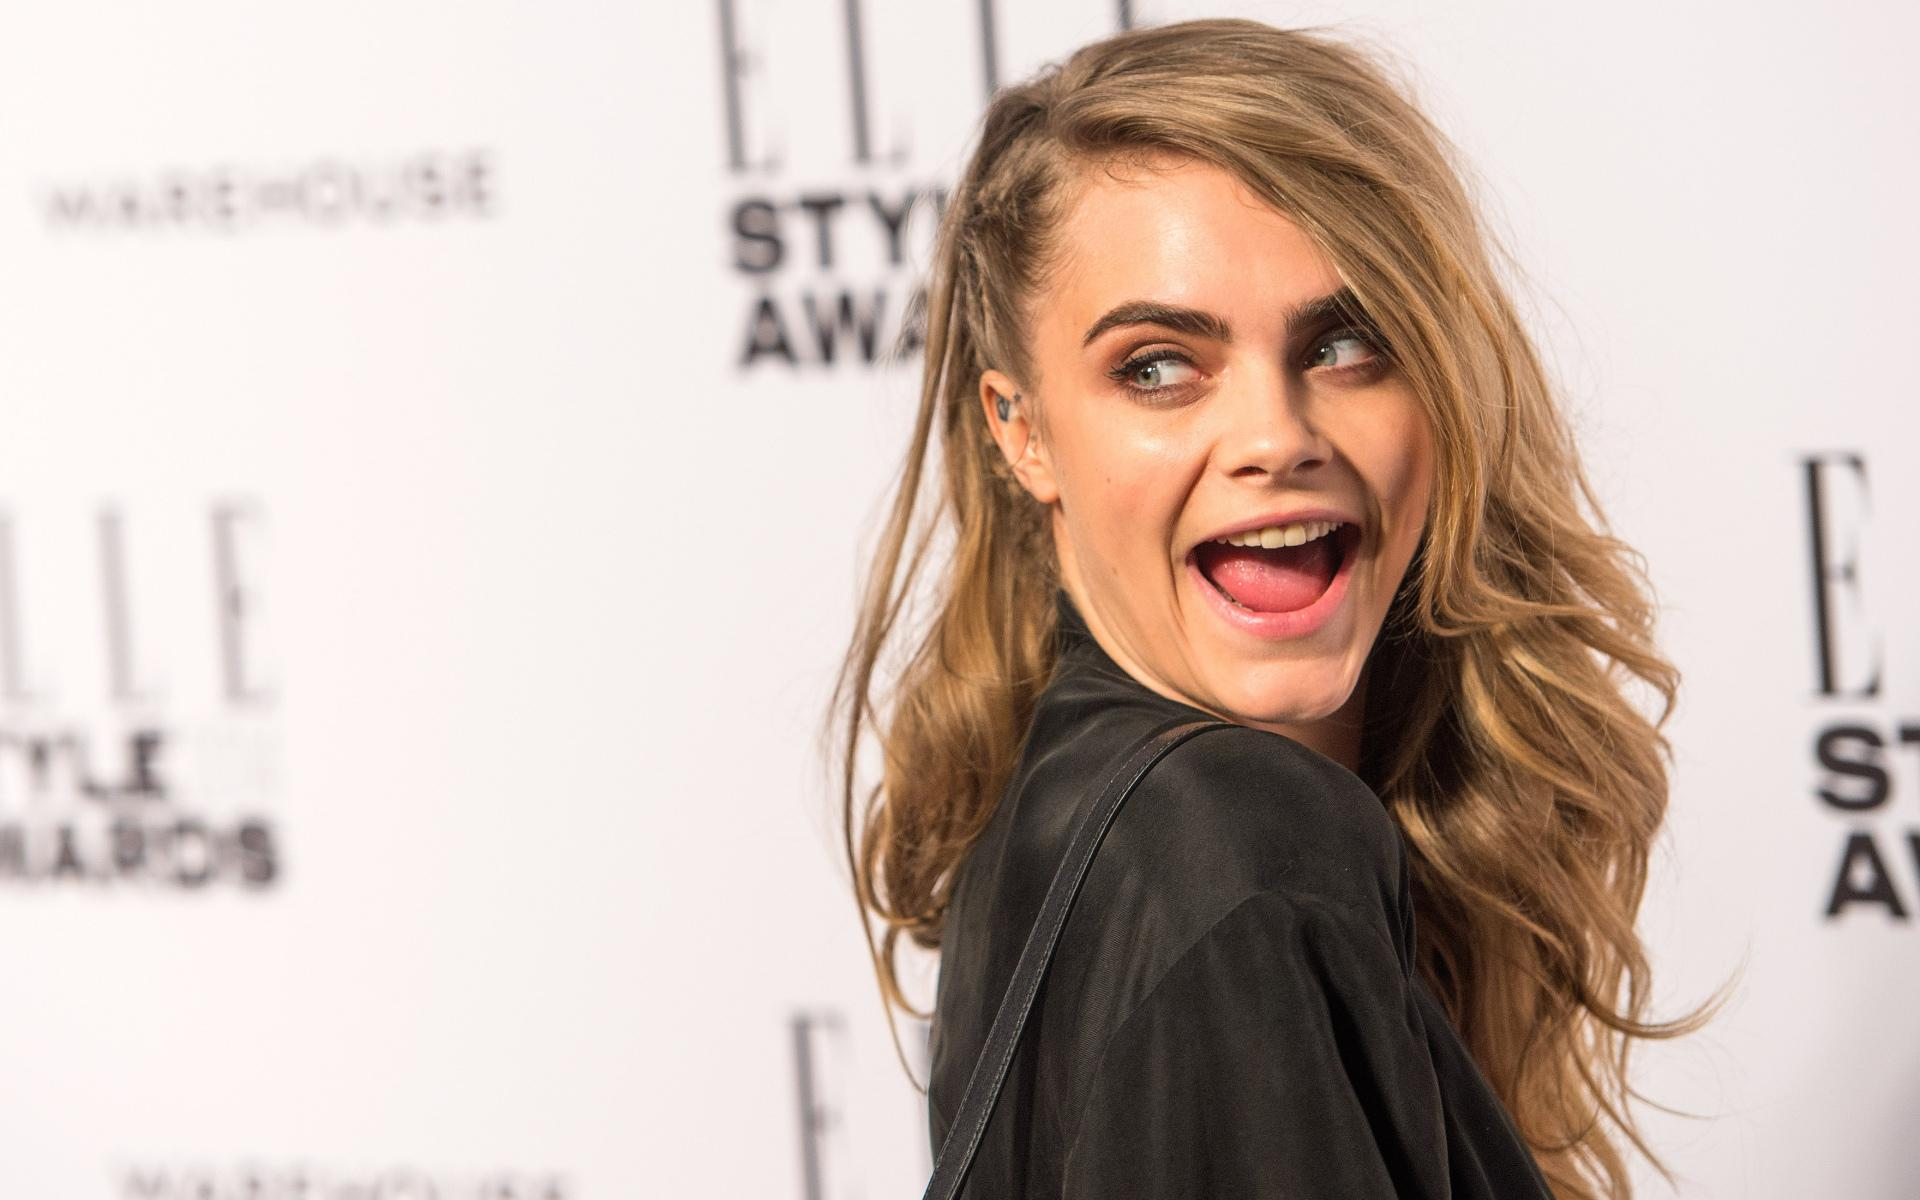 Cara Delevingne Wallpapers For Iphone